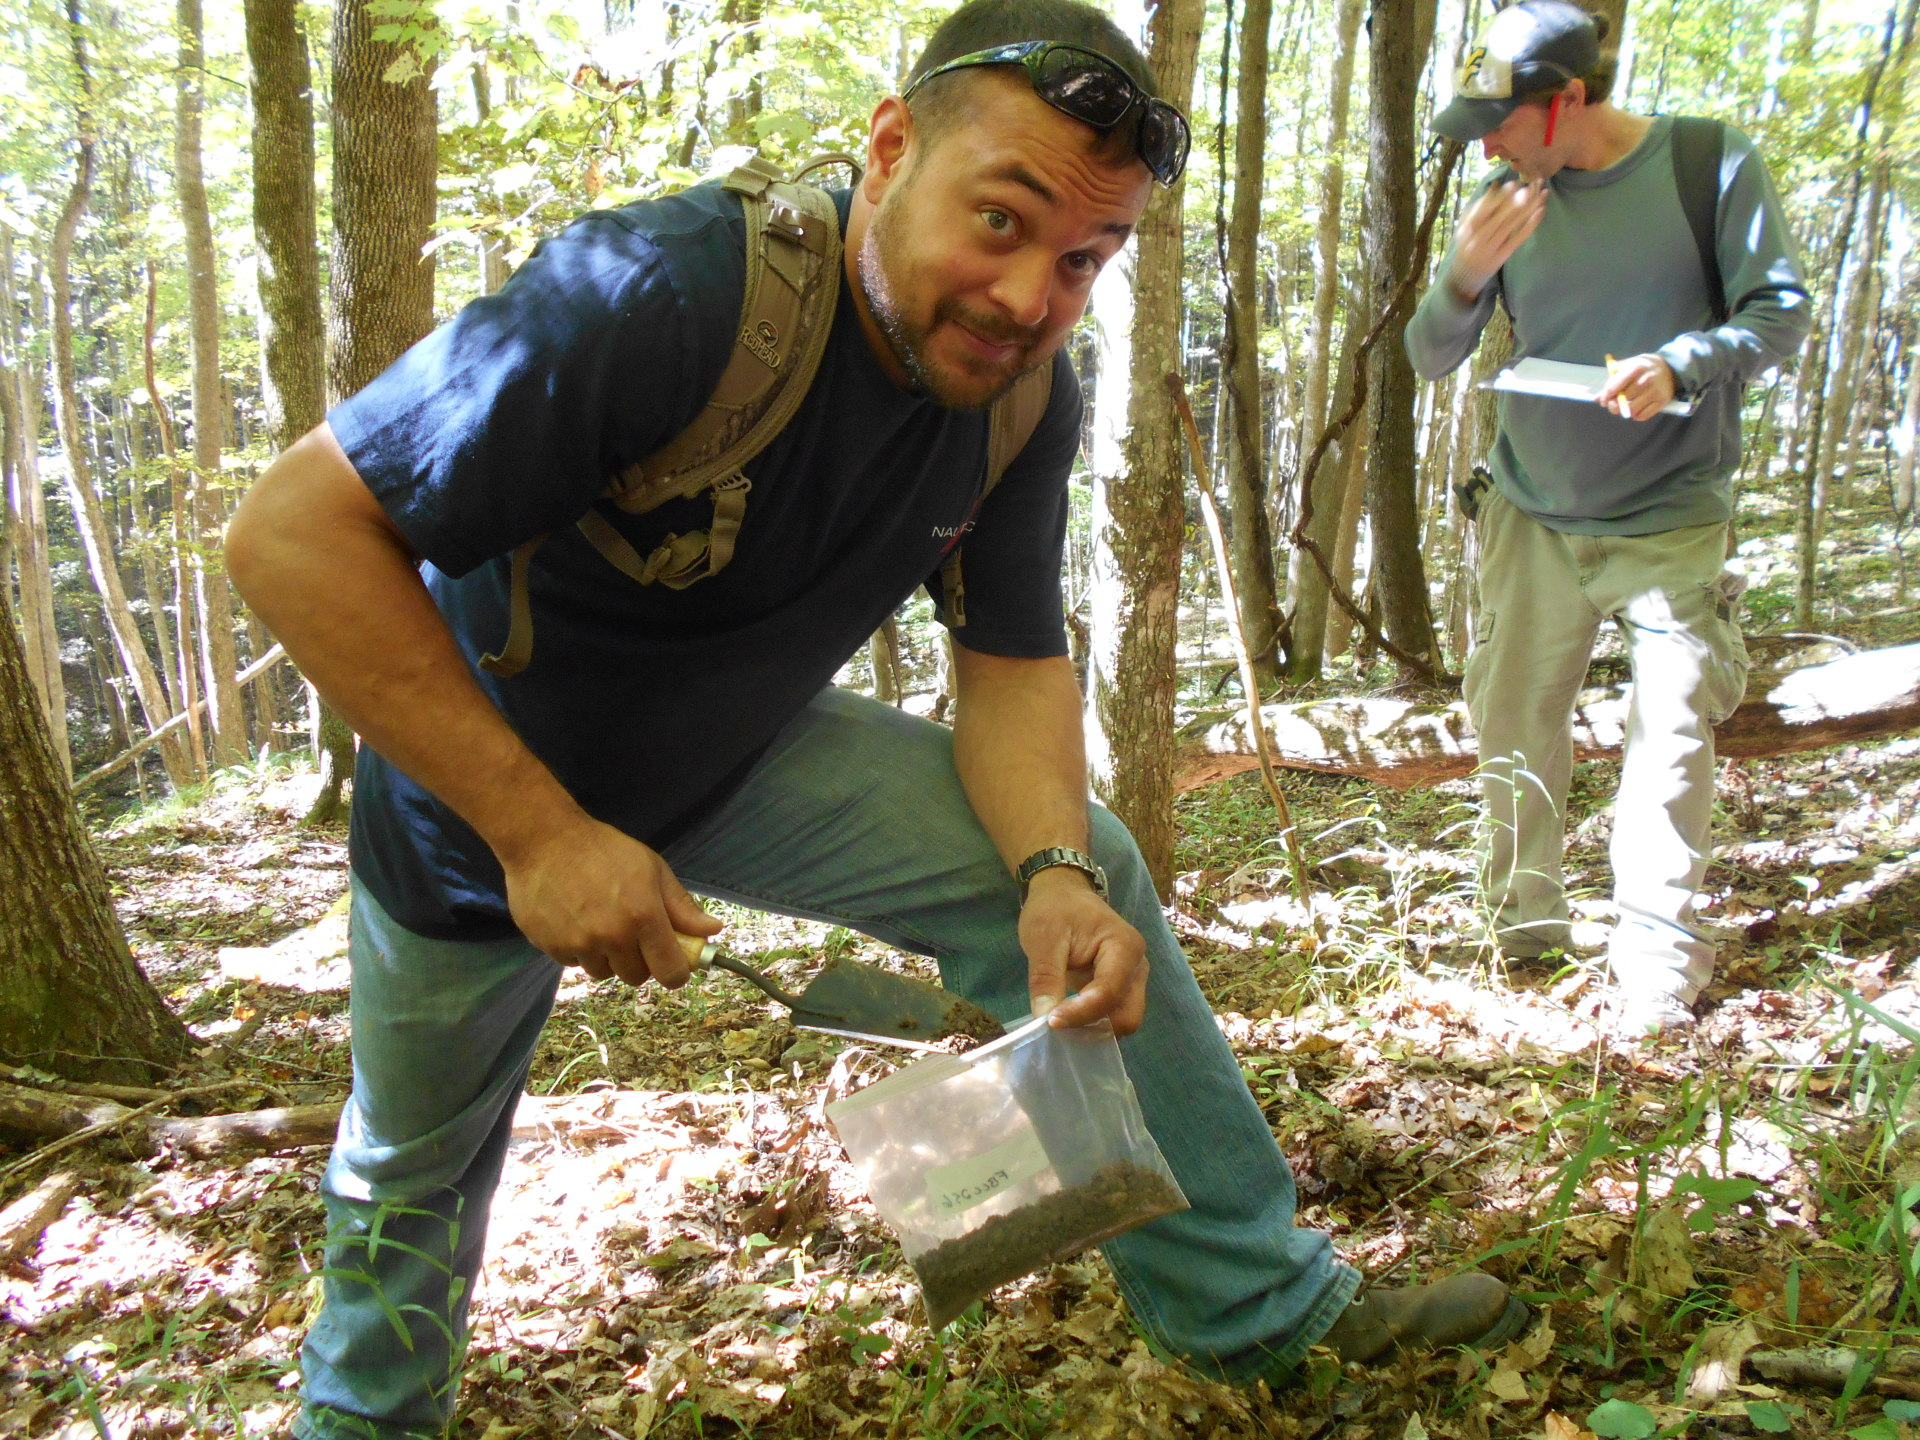 Soil Sampling at Camp Creek State Forest